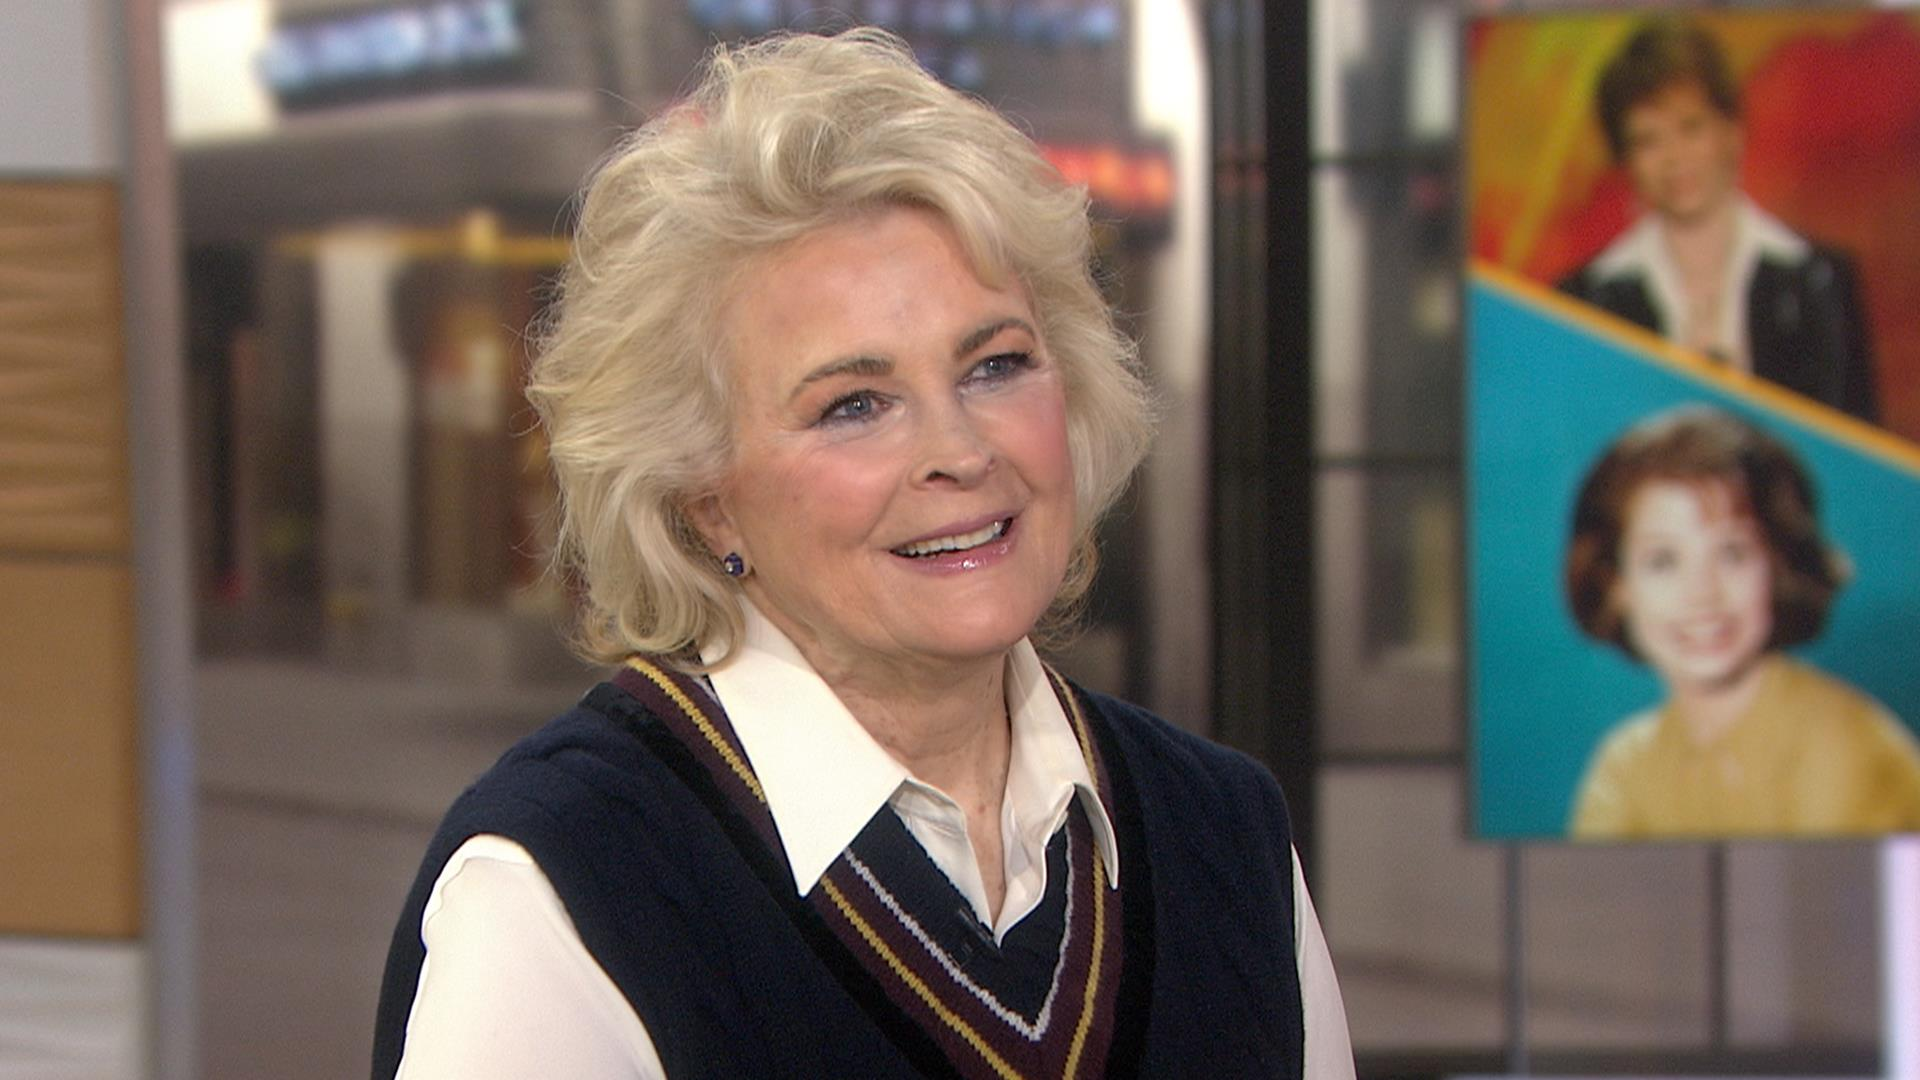 bergen single parents One cool, eternally classy lady, candice bergen was elegantly poised for trendy ice princess stardom when she first arrived on the 60s screen, but.